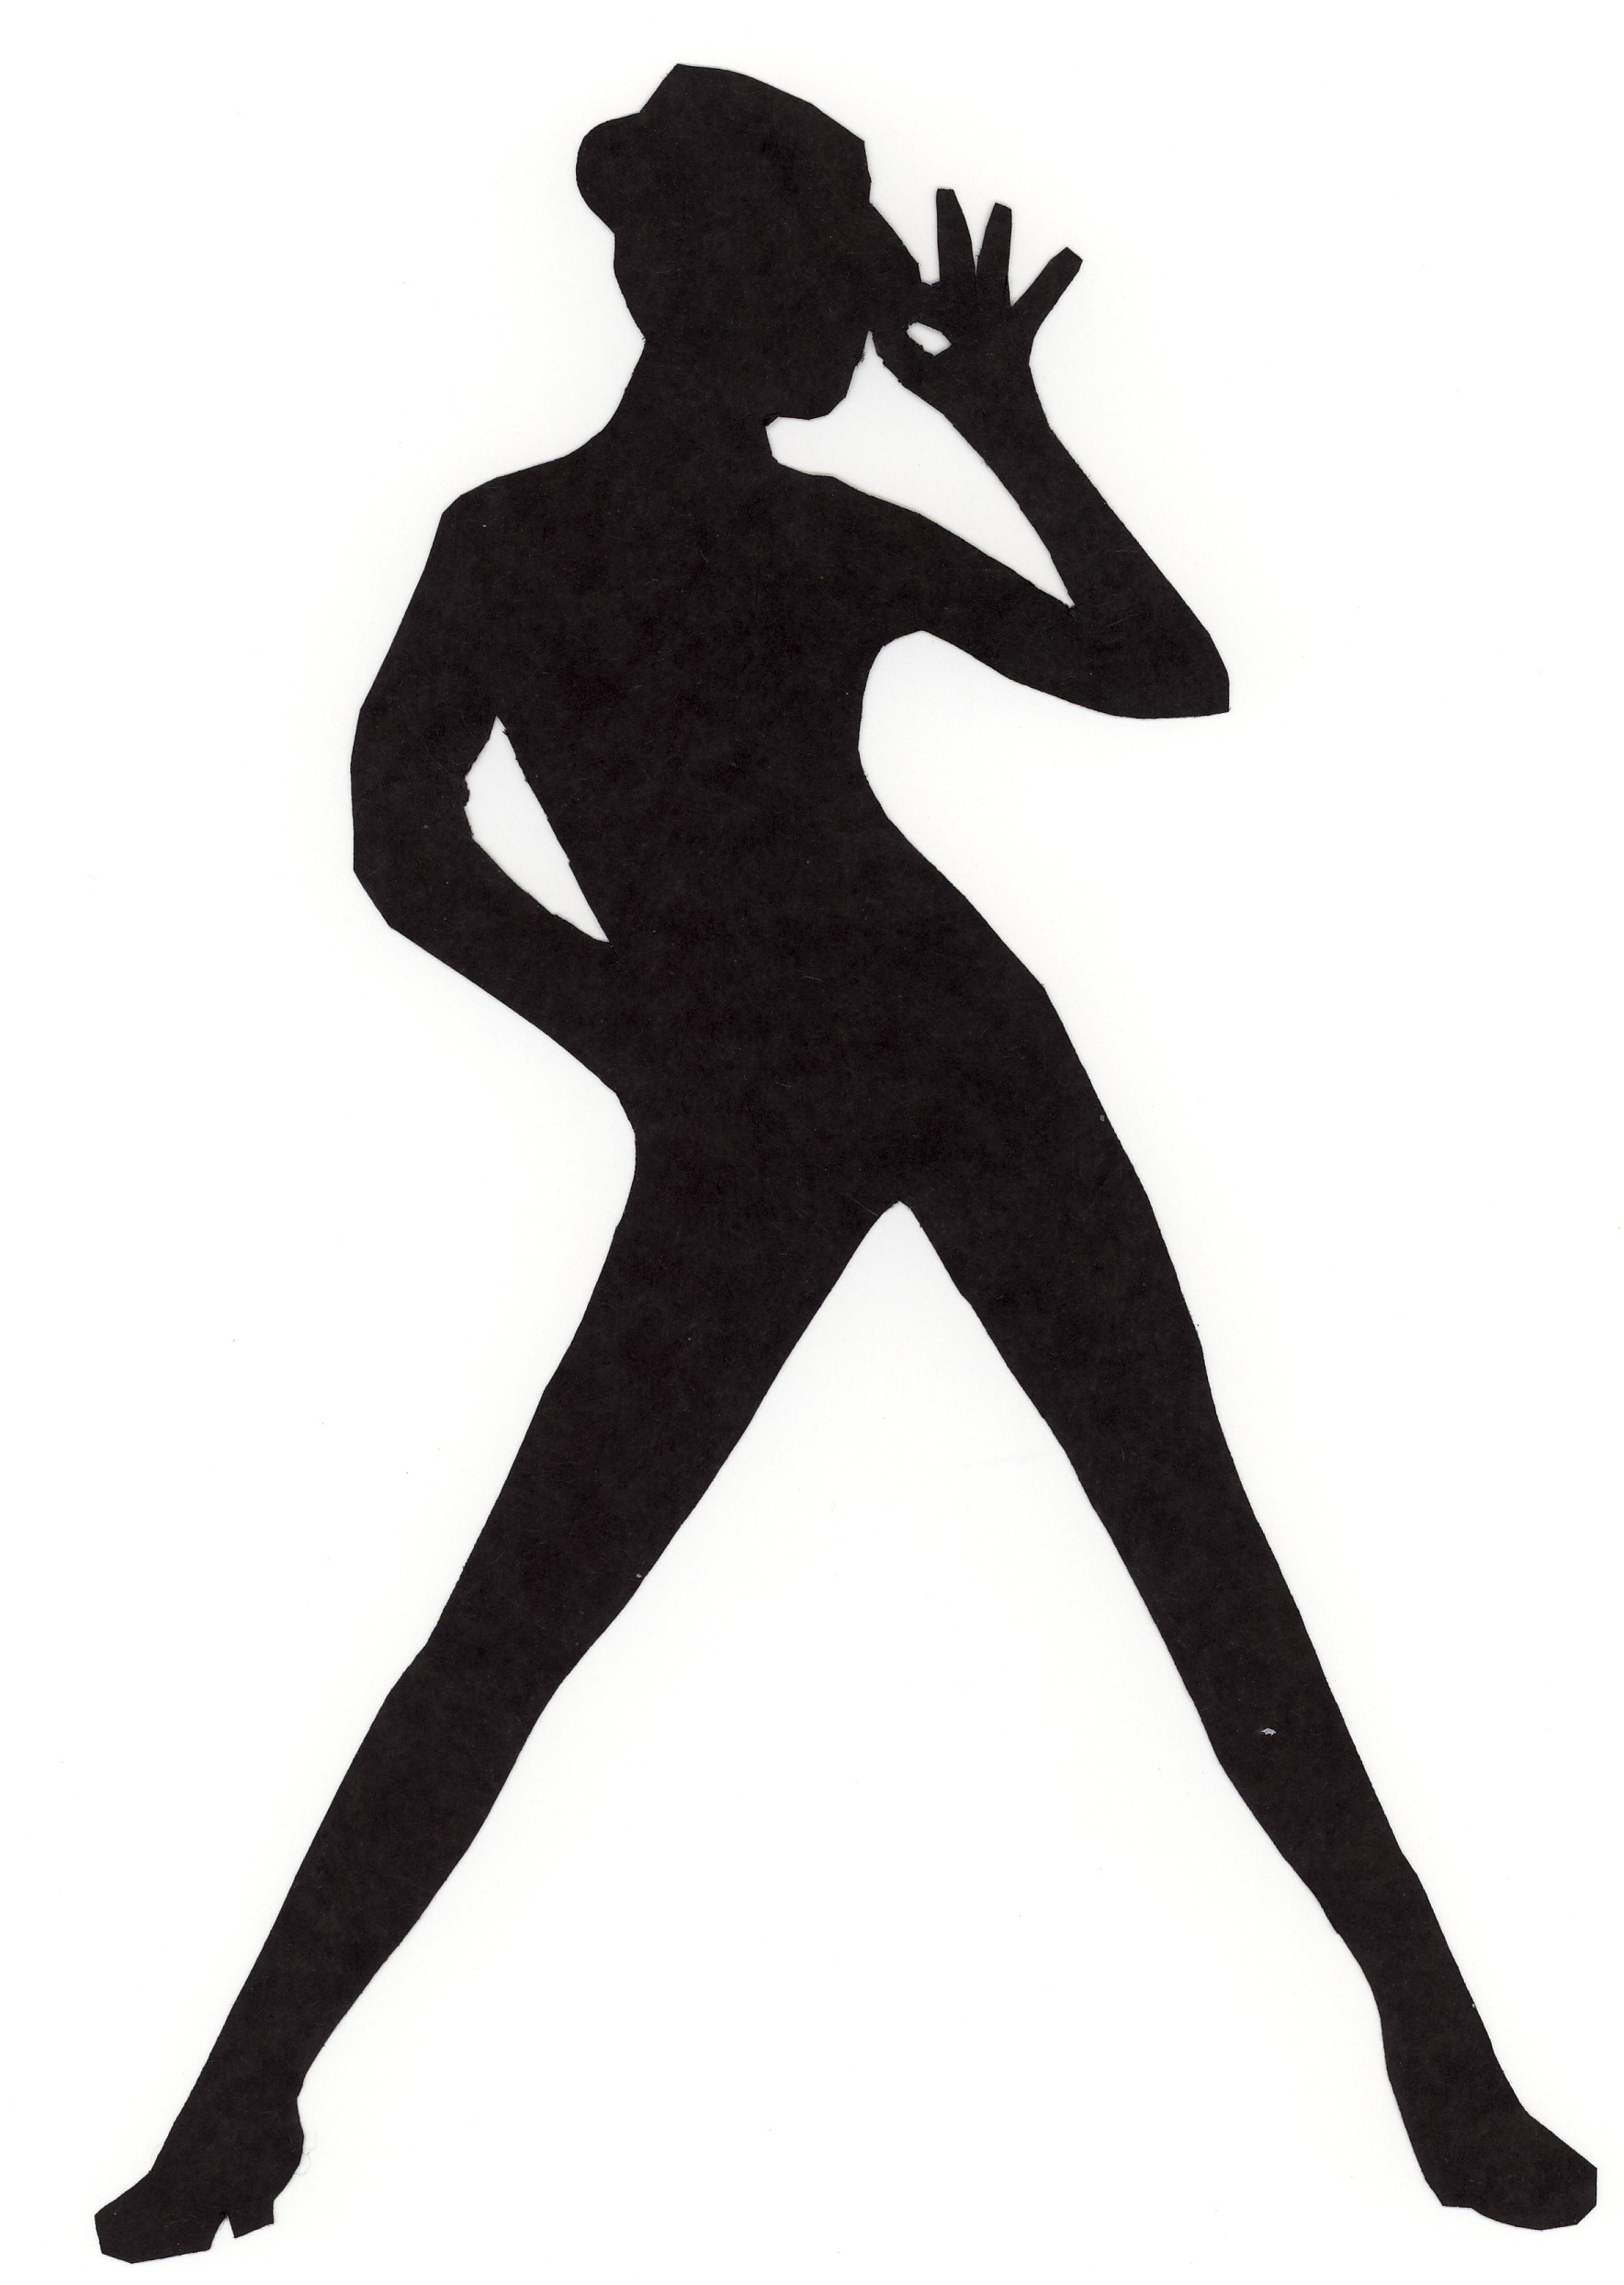 Dancer clipart #3, Download drawings